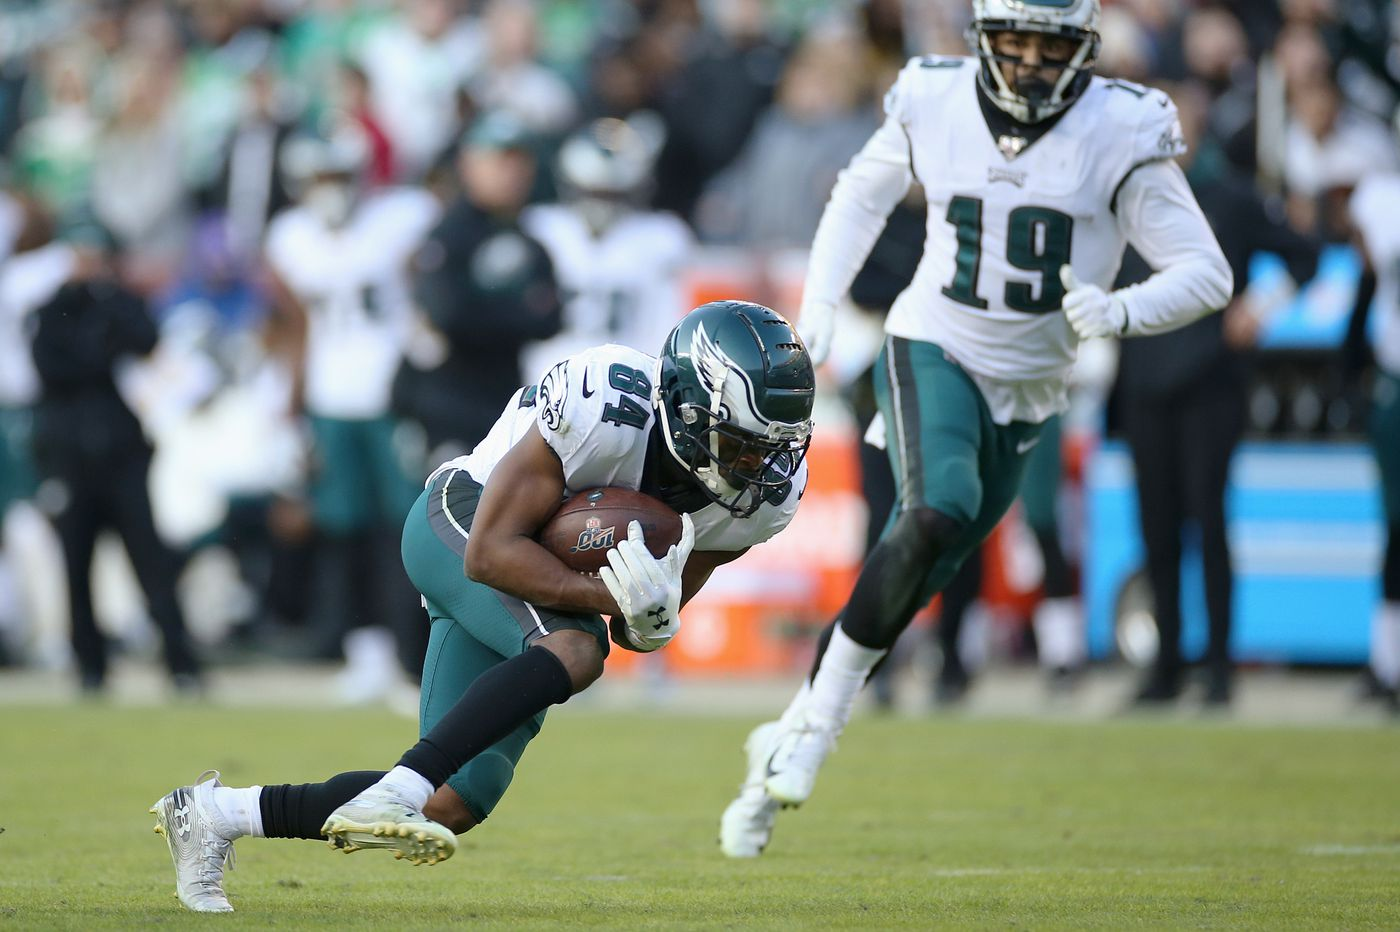 Eagles-Redskins Up-Down Drill: Carson Wentz, Greg Ward, and comeback heroes | Jeff McLane